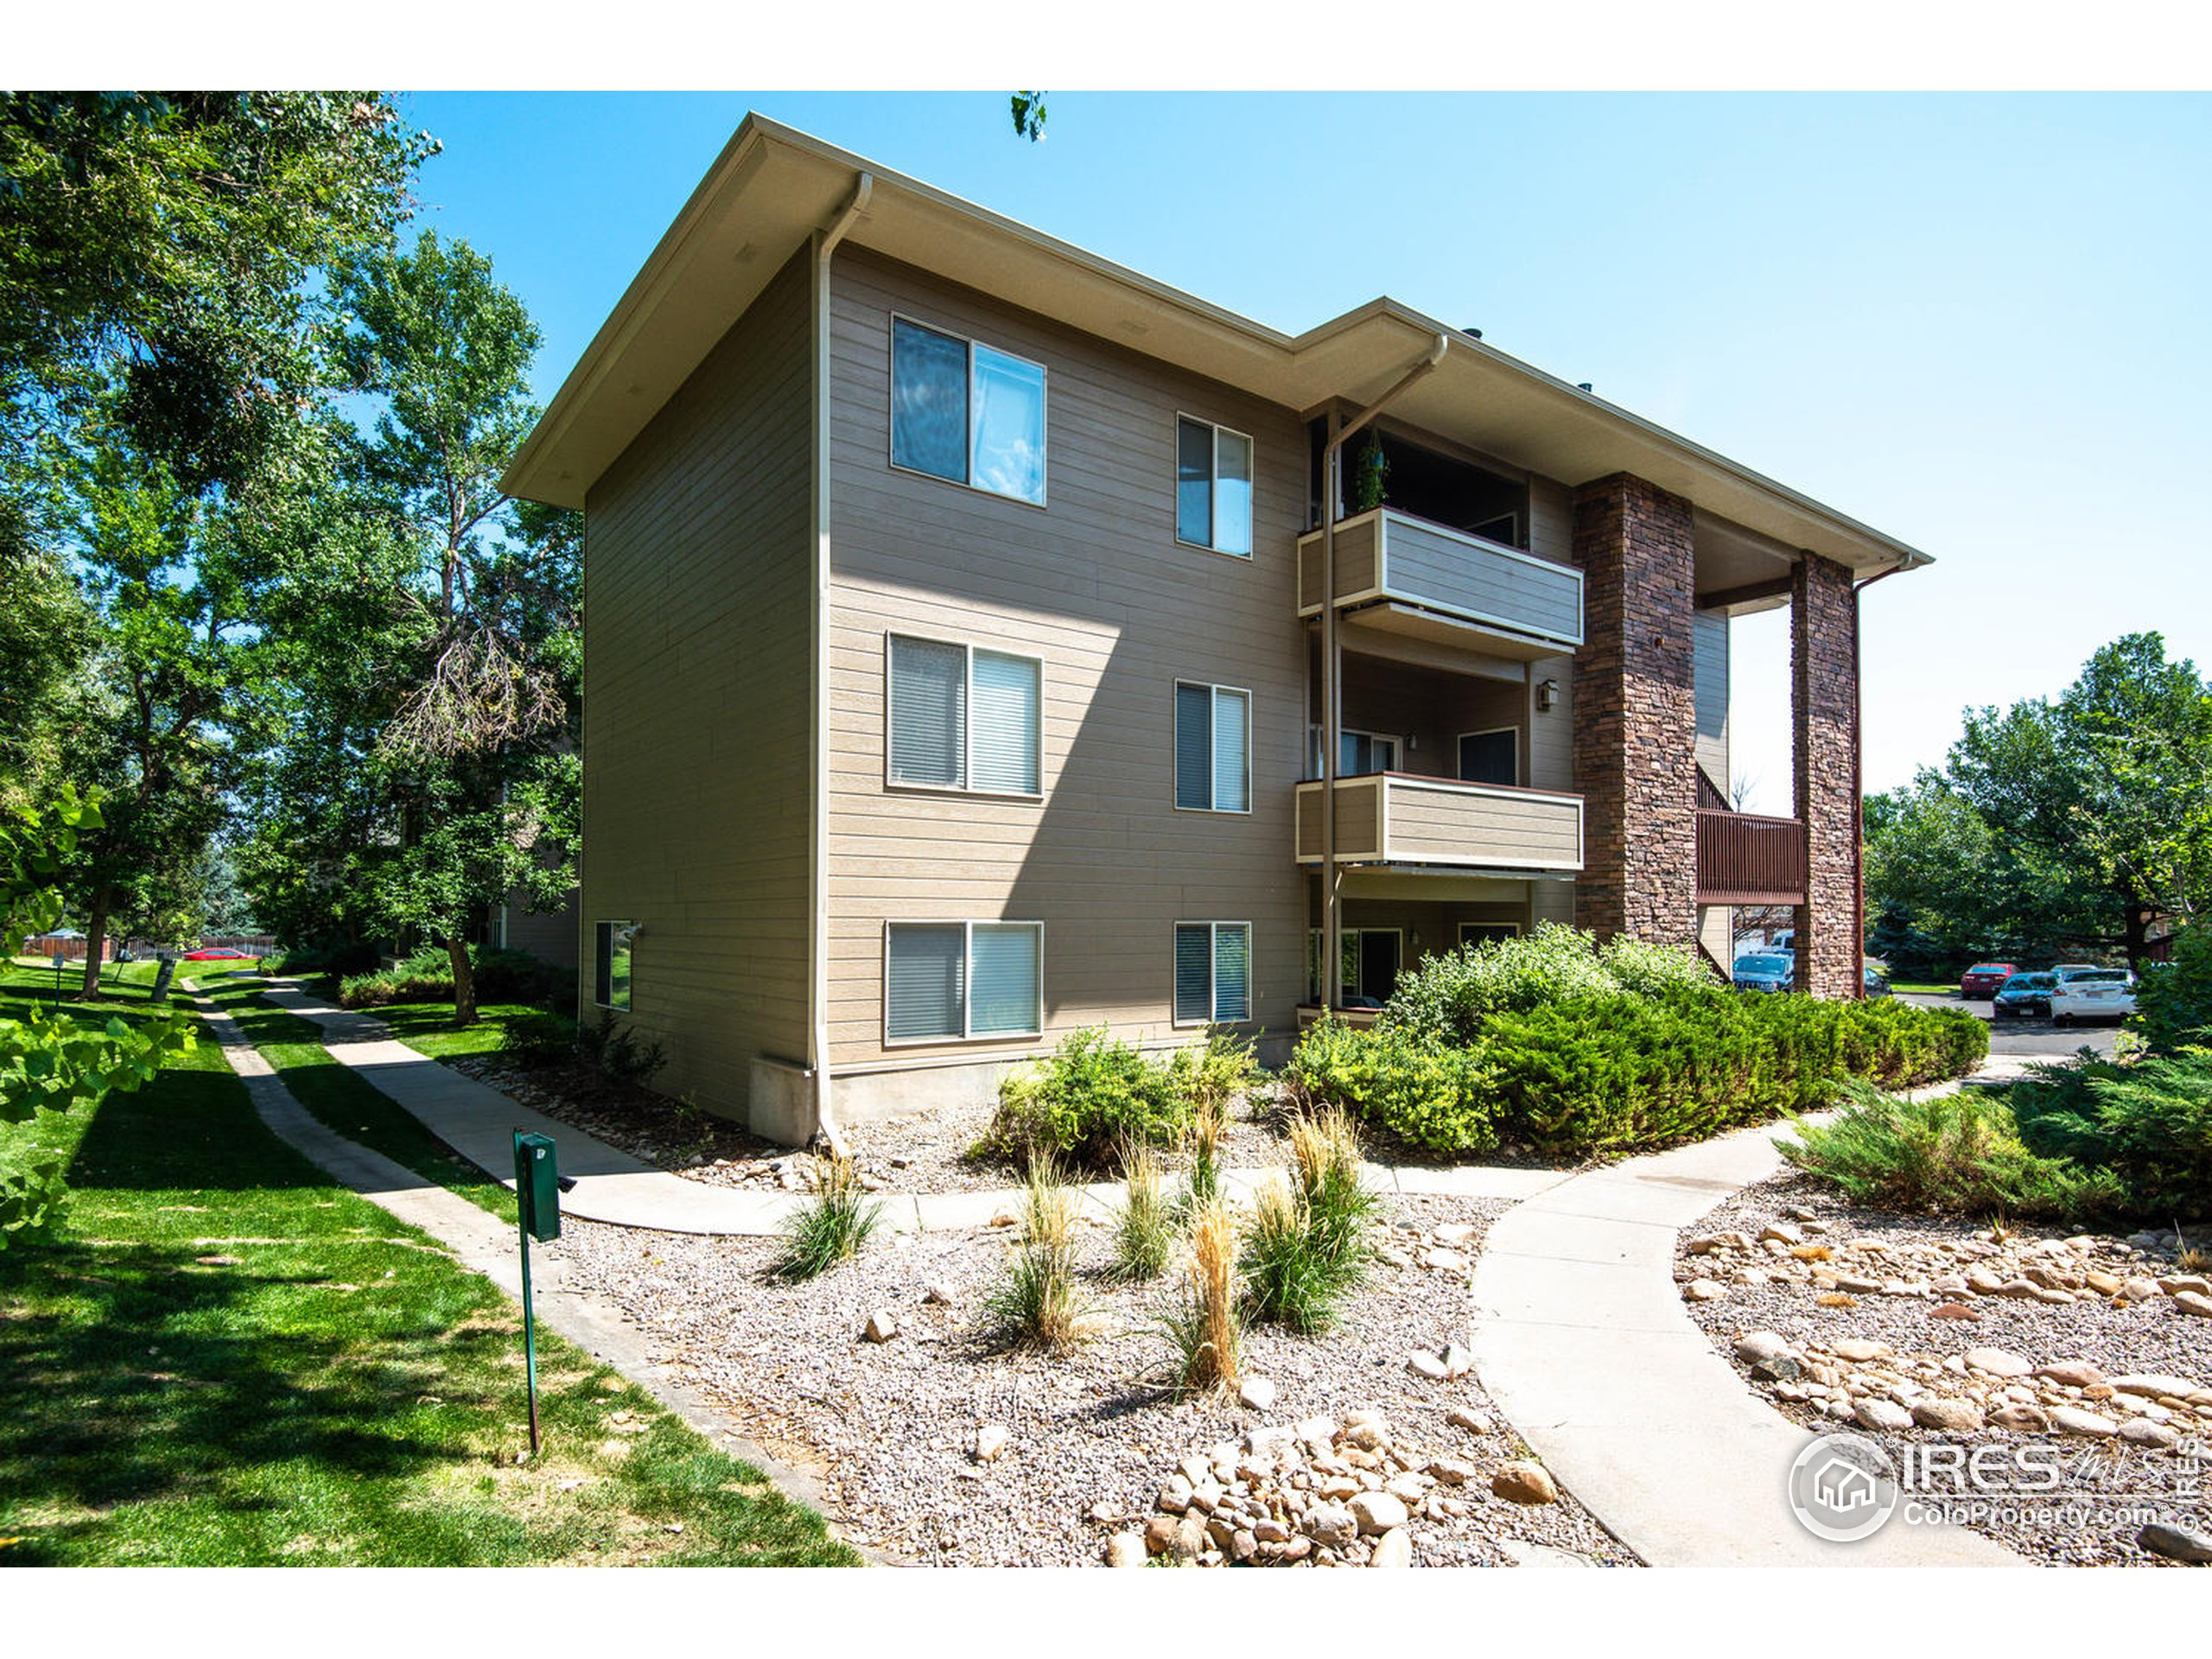 Updated condo in Rockbridge in Fort Collins.  1100+ Sq. Ft. 2 Nice sized bedrooms each with its own bath.  New paint and flooring. Nice deck. Laundry room and nice sized kitchen. Very close to the pool and clubhouse. New furnace and air conditioning coming soon.  Show it today!!